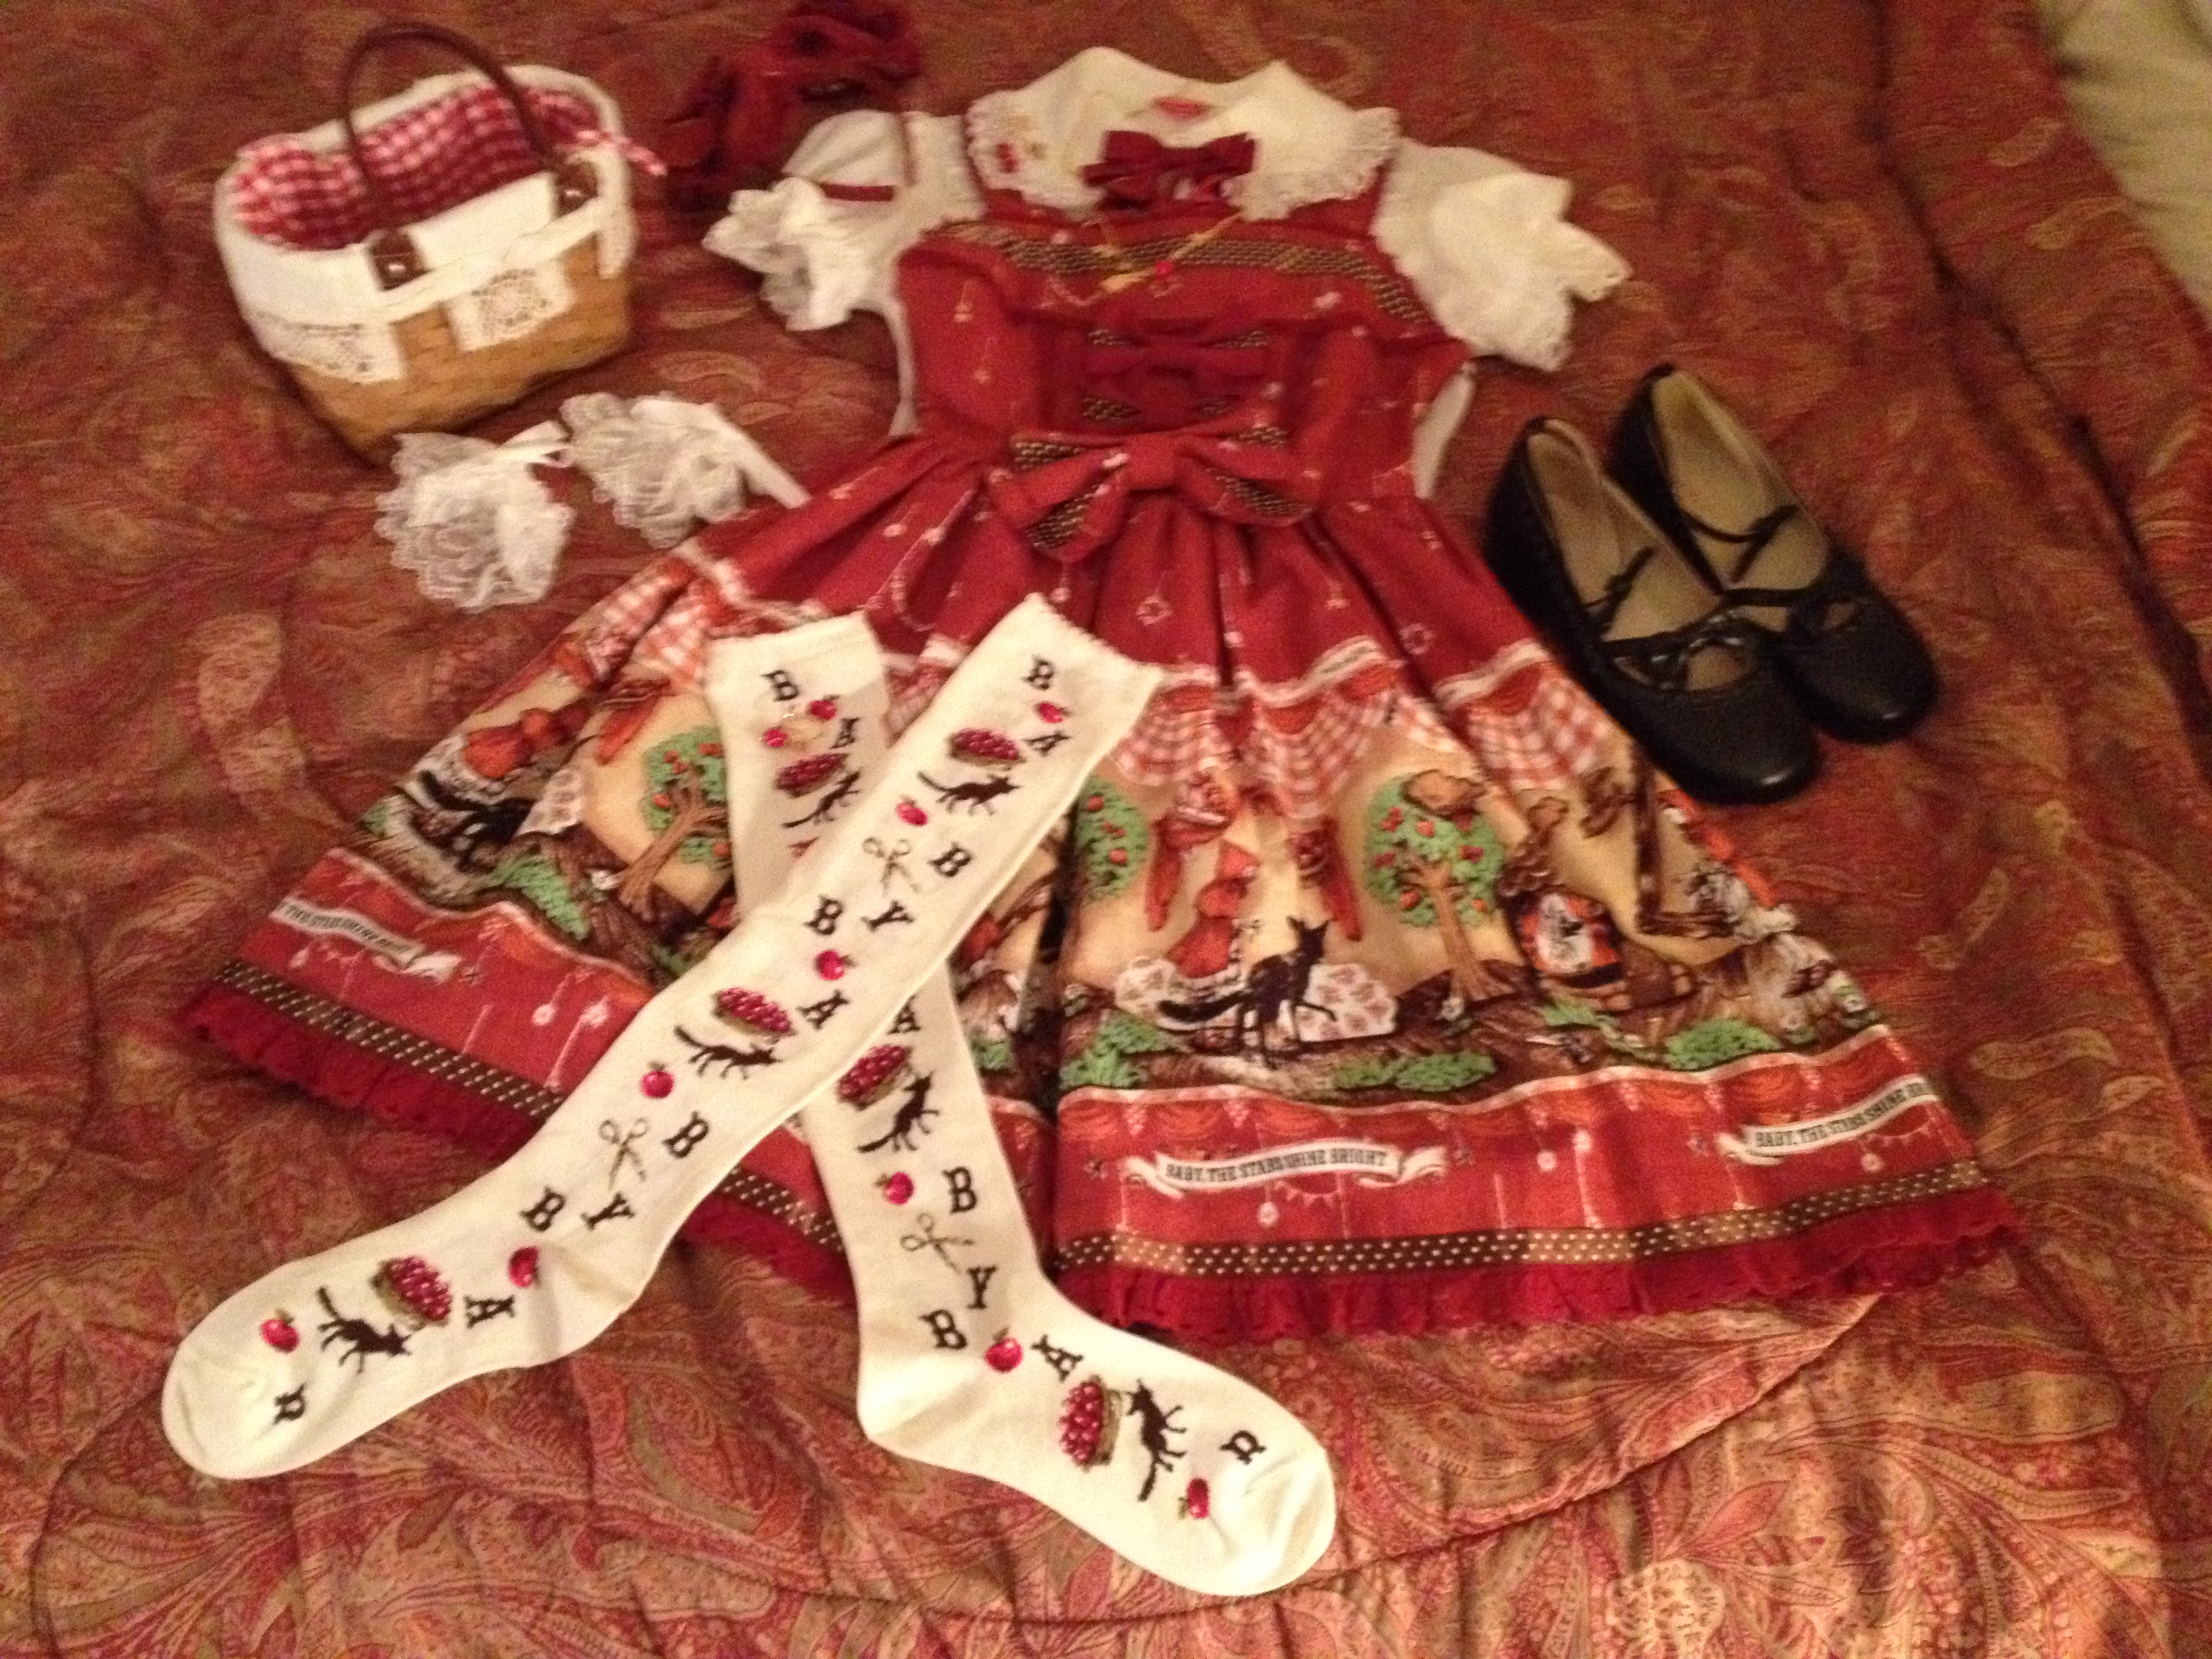 My Red Riding Hood coord